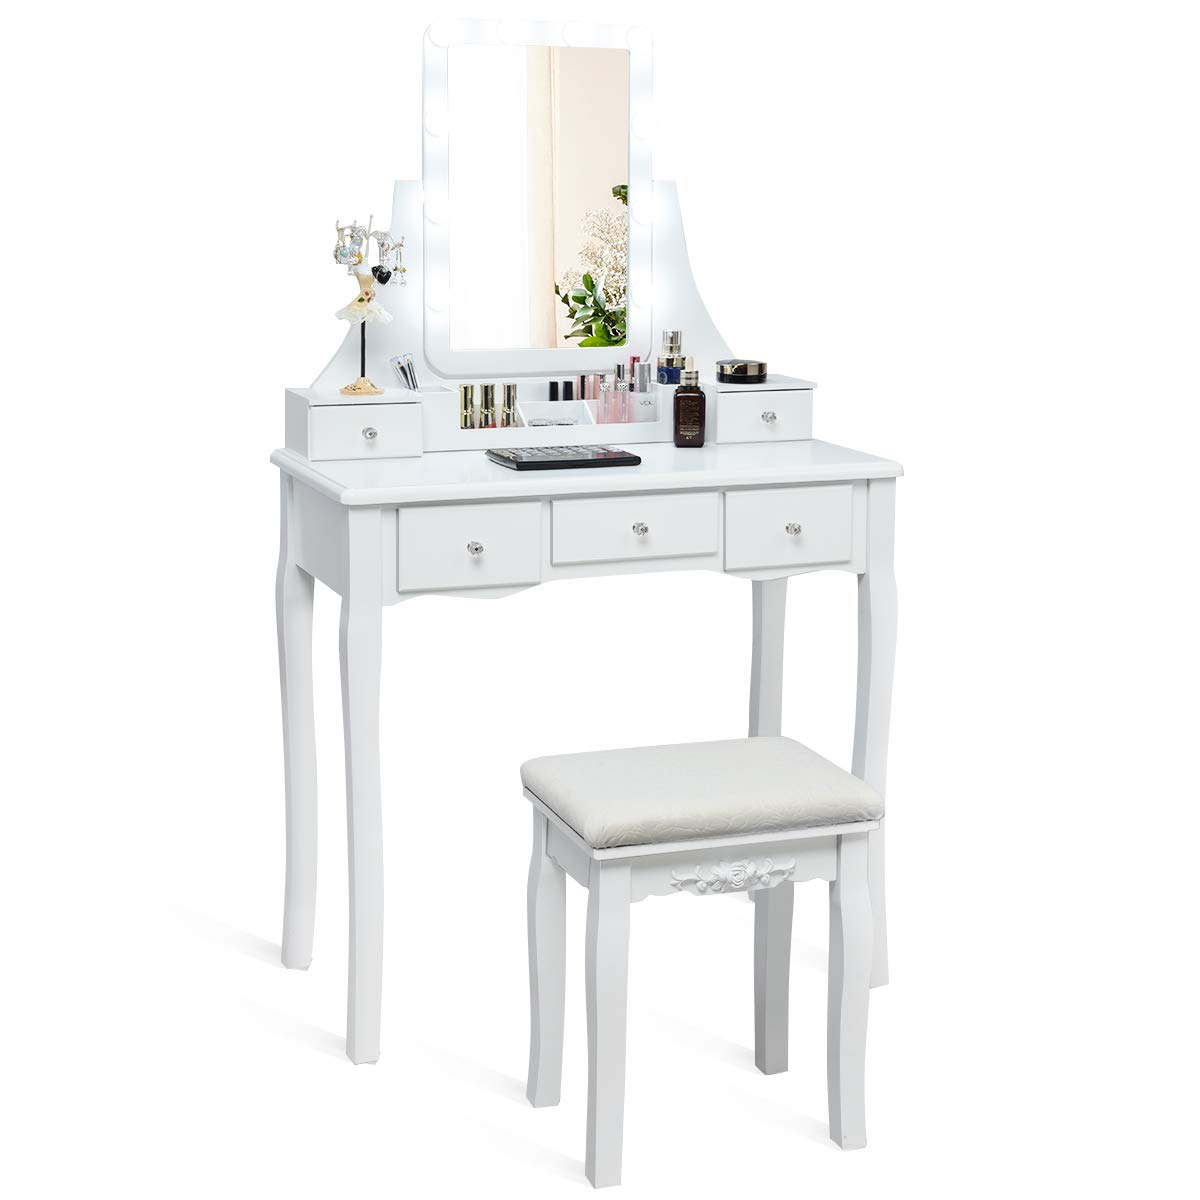 Charmaid Vanity Set With Lighted Mirror 10 Dimmable Light Bulbs Vanity Dressing Table 5 Drawer With 2 Dividers Removable Organizer Makeup Table And Cushioned Stool Set With 10 Led Bulbs White Buy